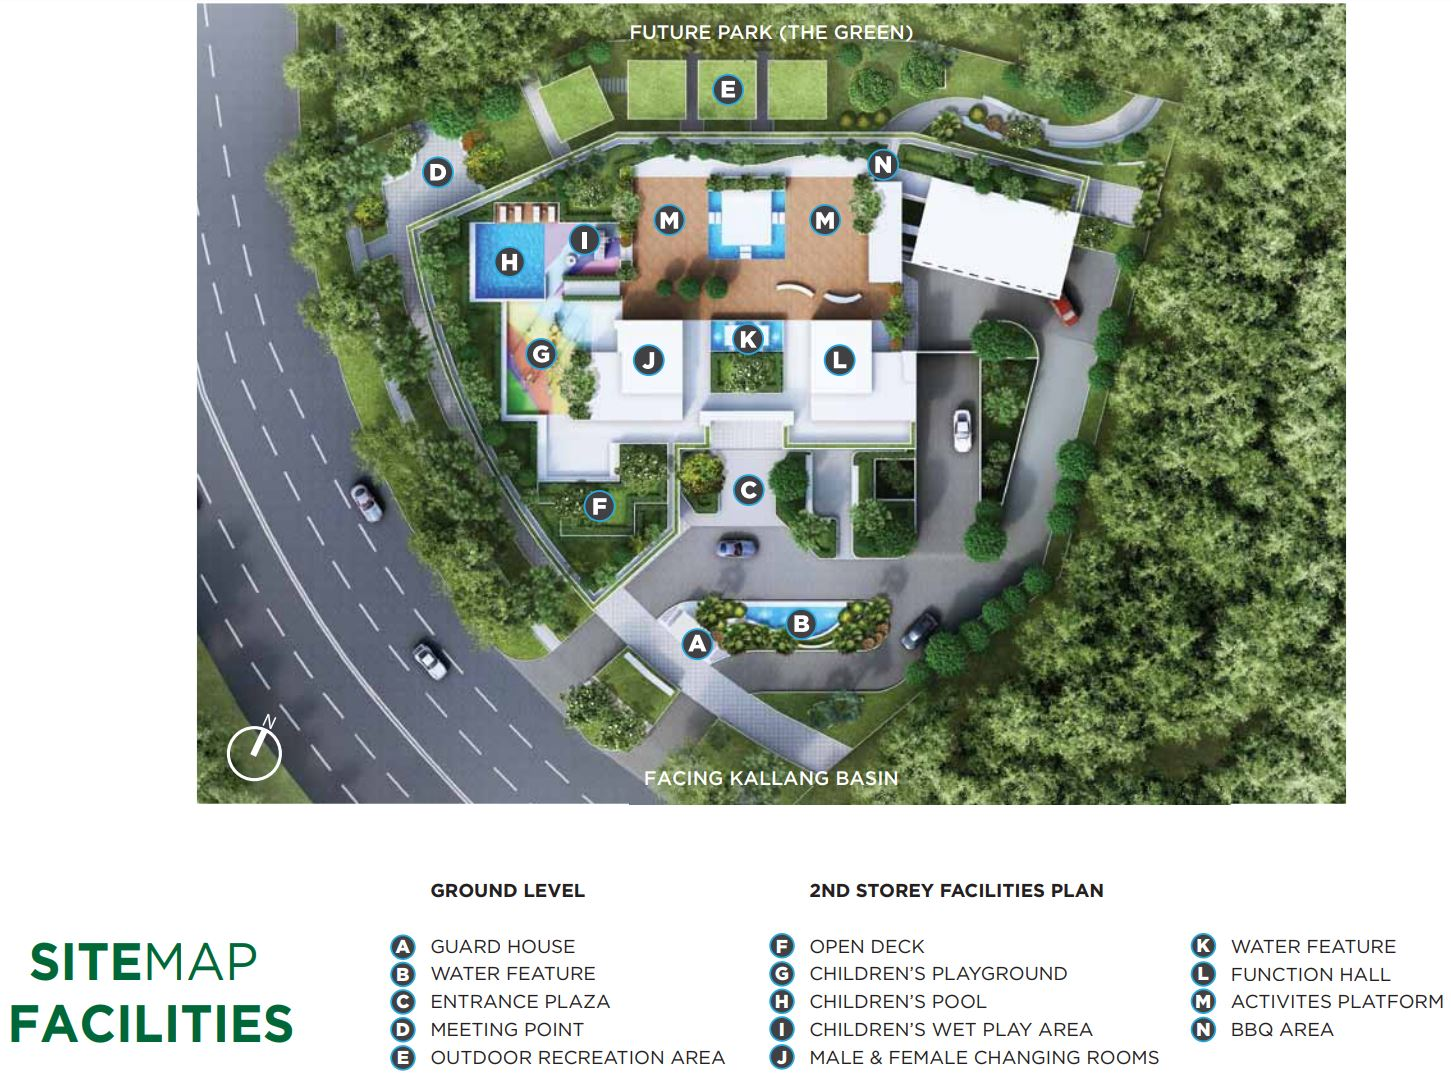 Kallang Riverside Siteplan Facilities